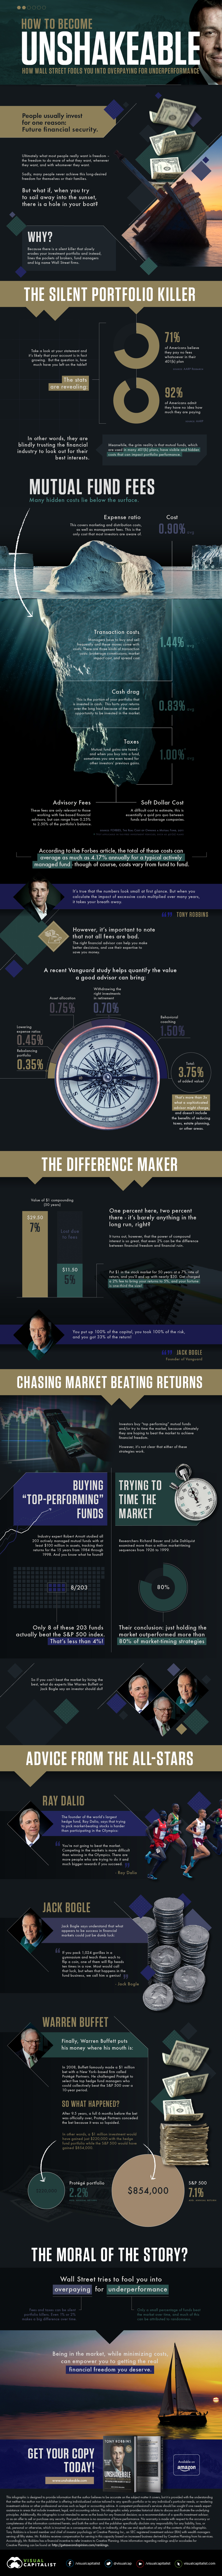 How Wall Street Fools You Into Overpaying for Underperformance